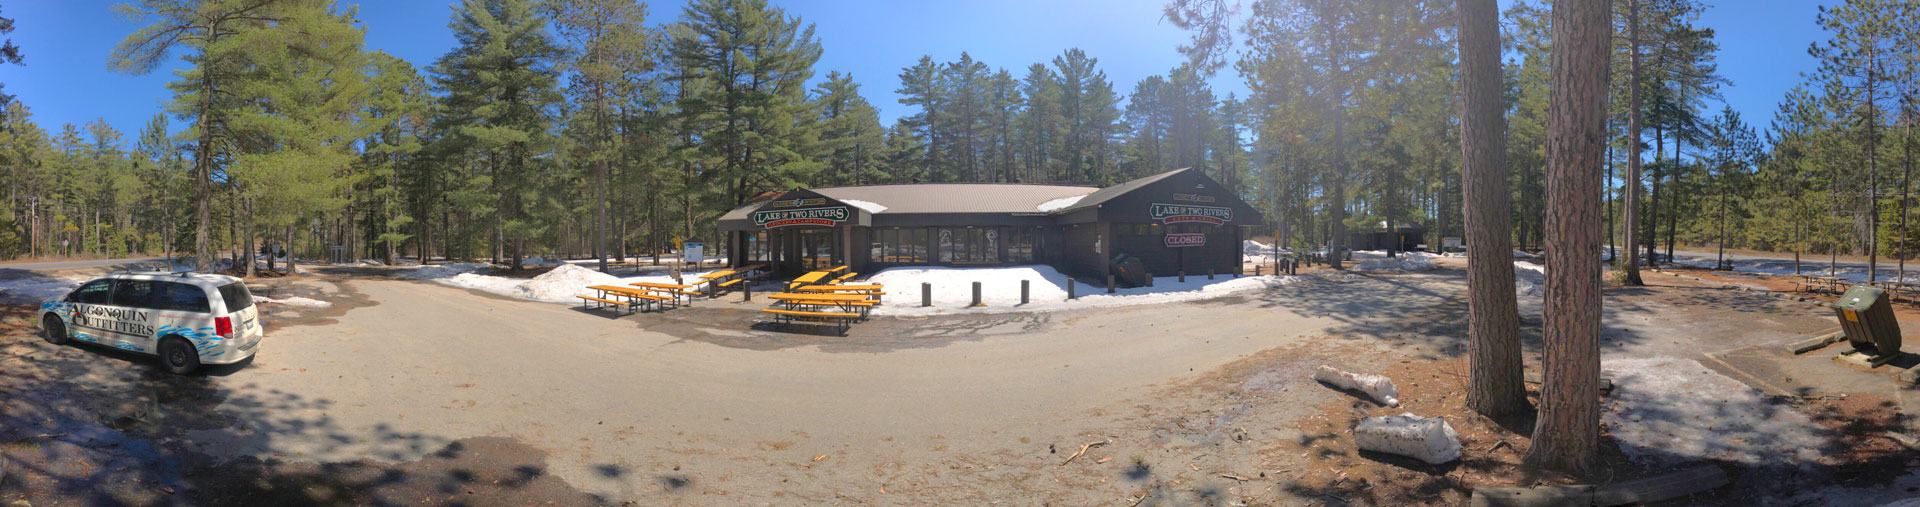 Algonquin Outfitters Lake of Two Rivers Store